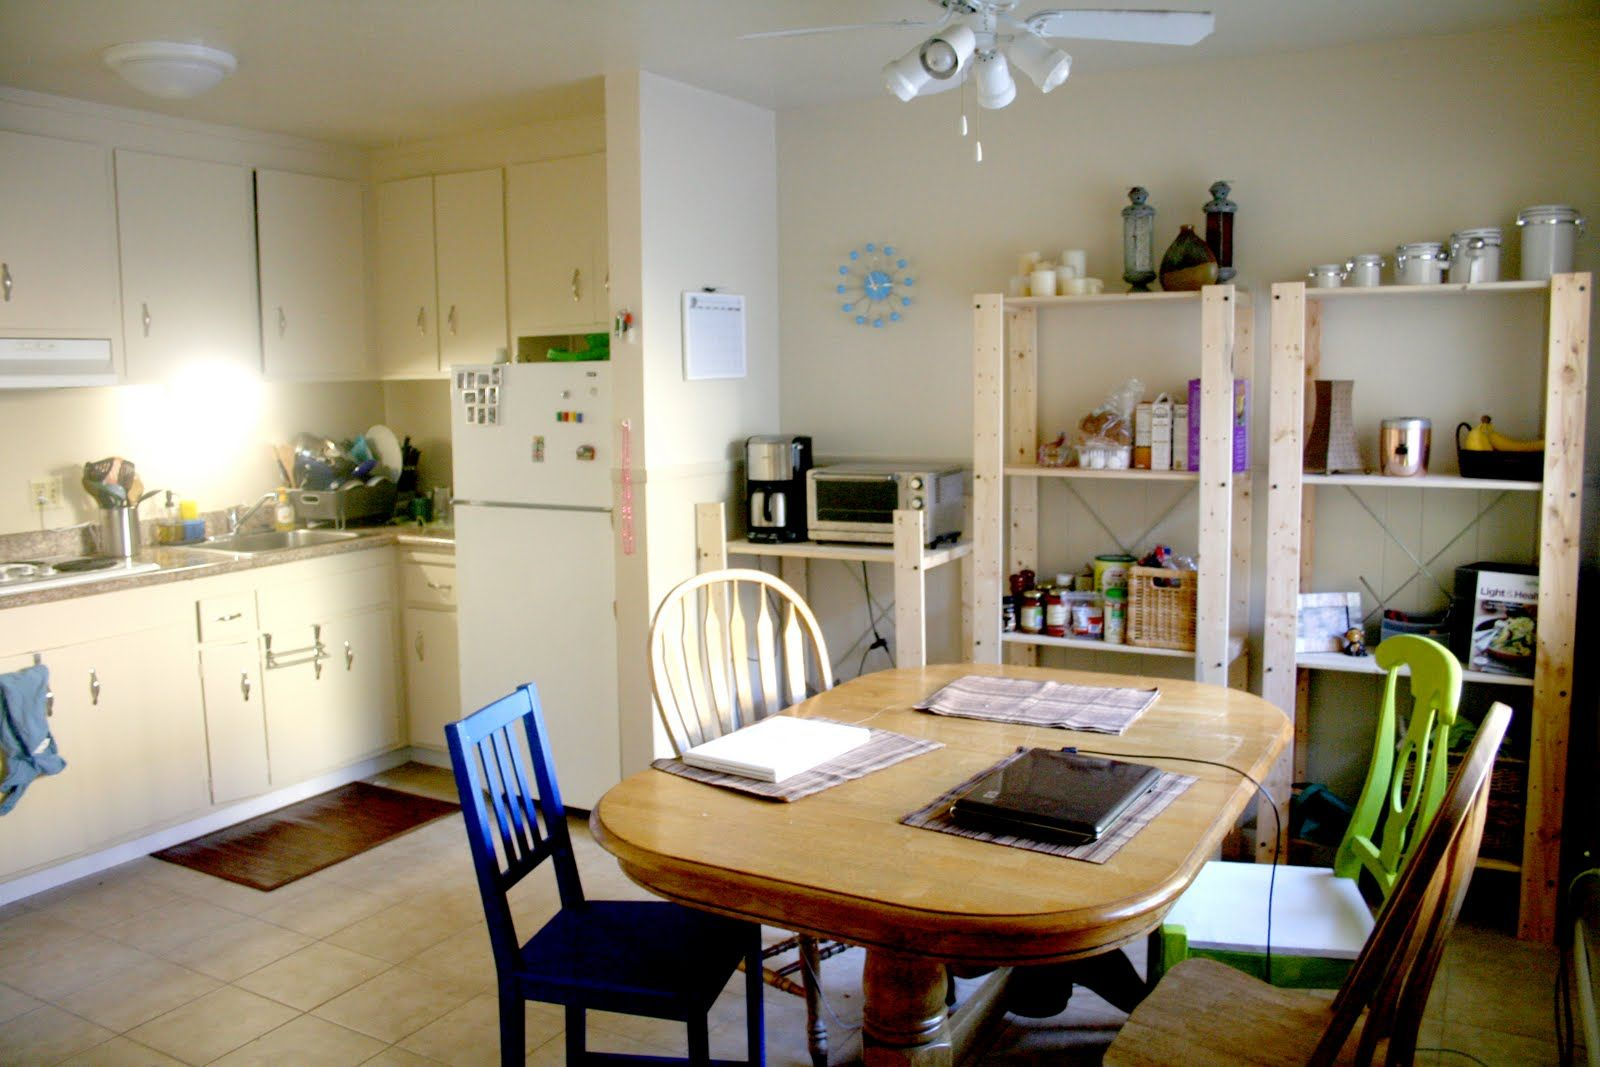 white-medium-plain-apartment-kitchen-combines-wooden-dining-table